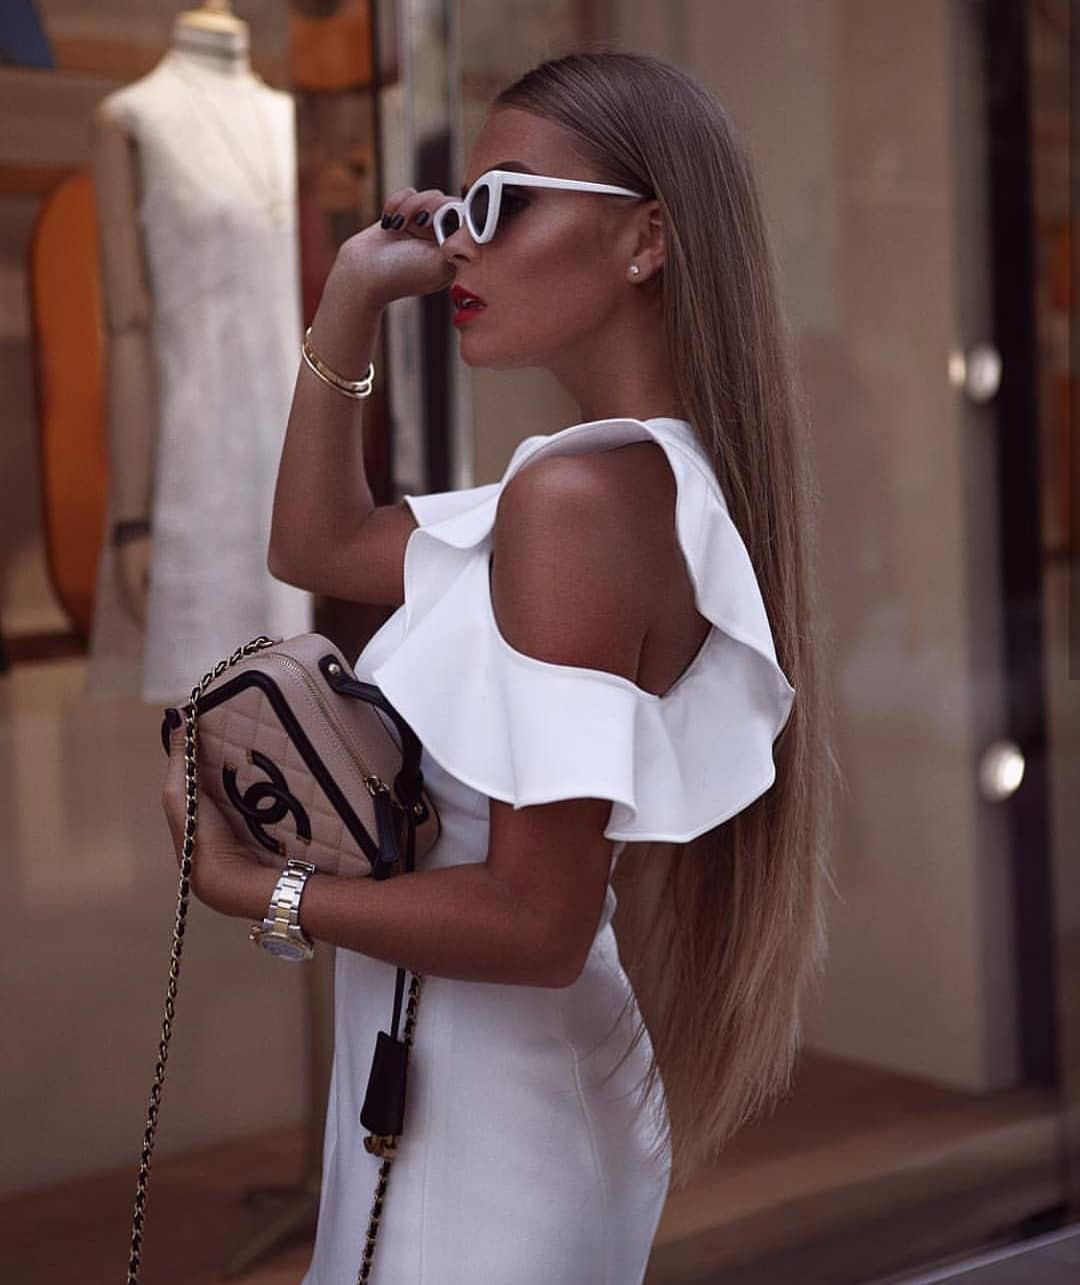 Sleeveless Cold Shoulder Slim Dress In White For Summer Parties 2019